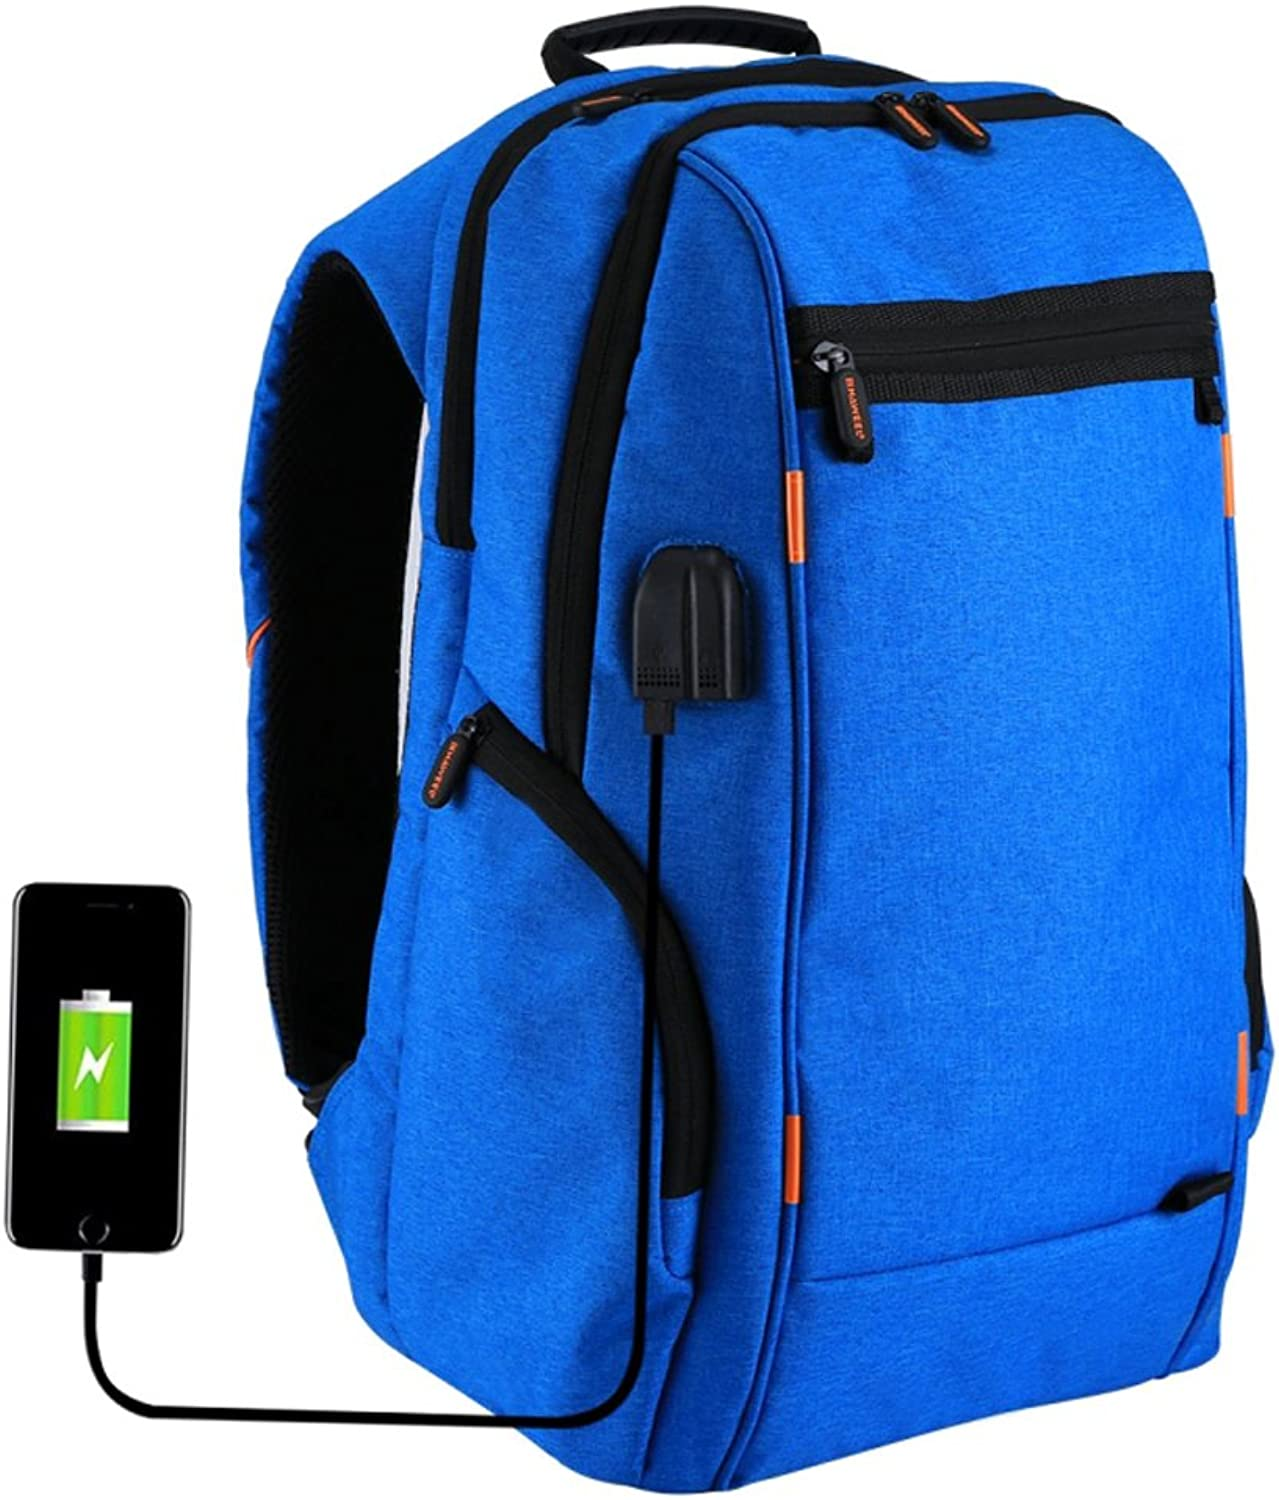 7f68a0cc756d Andoer Outdoor Backpack with USB Port Waterproof Travel Bag ...